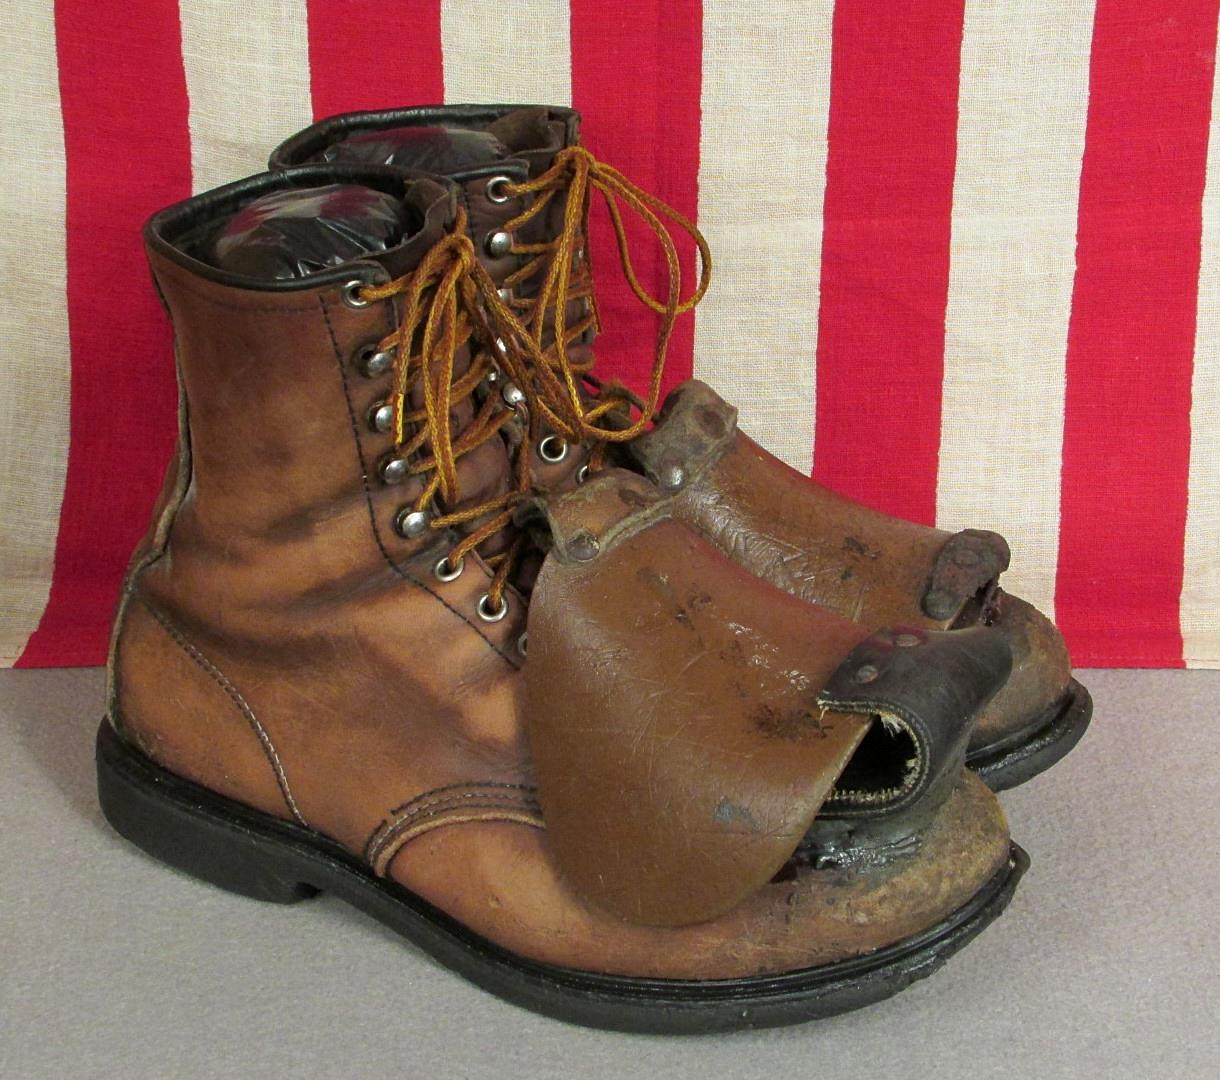 Vintage 1930s Red Wing Leather Miners Boots Work Wear Safety Top Guard Sz.11 | eBay